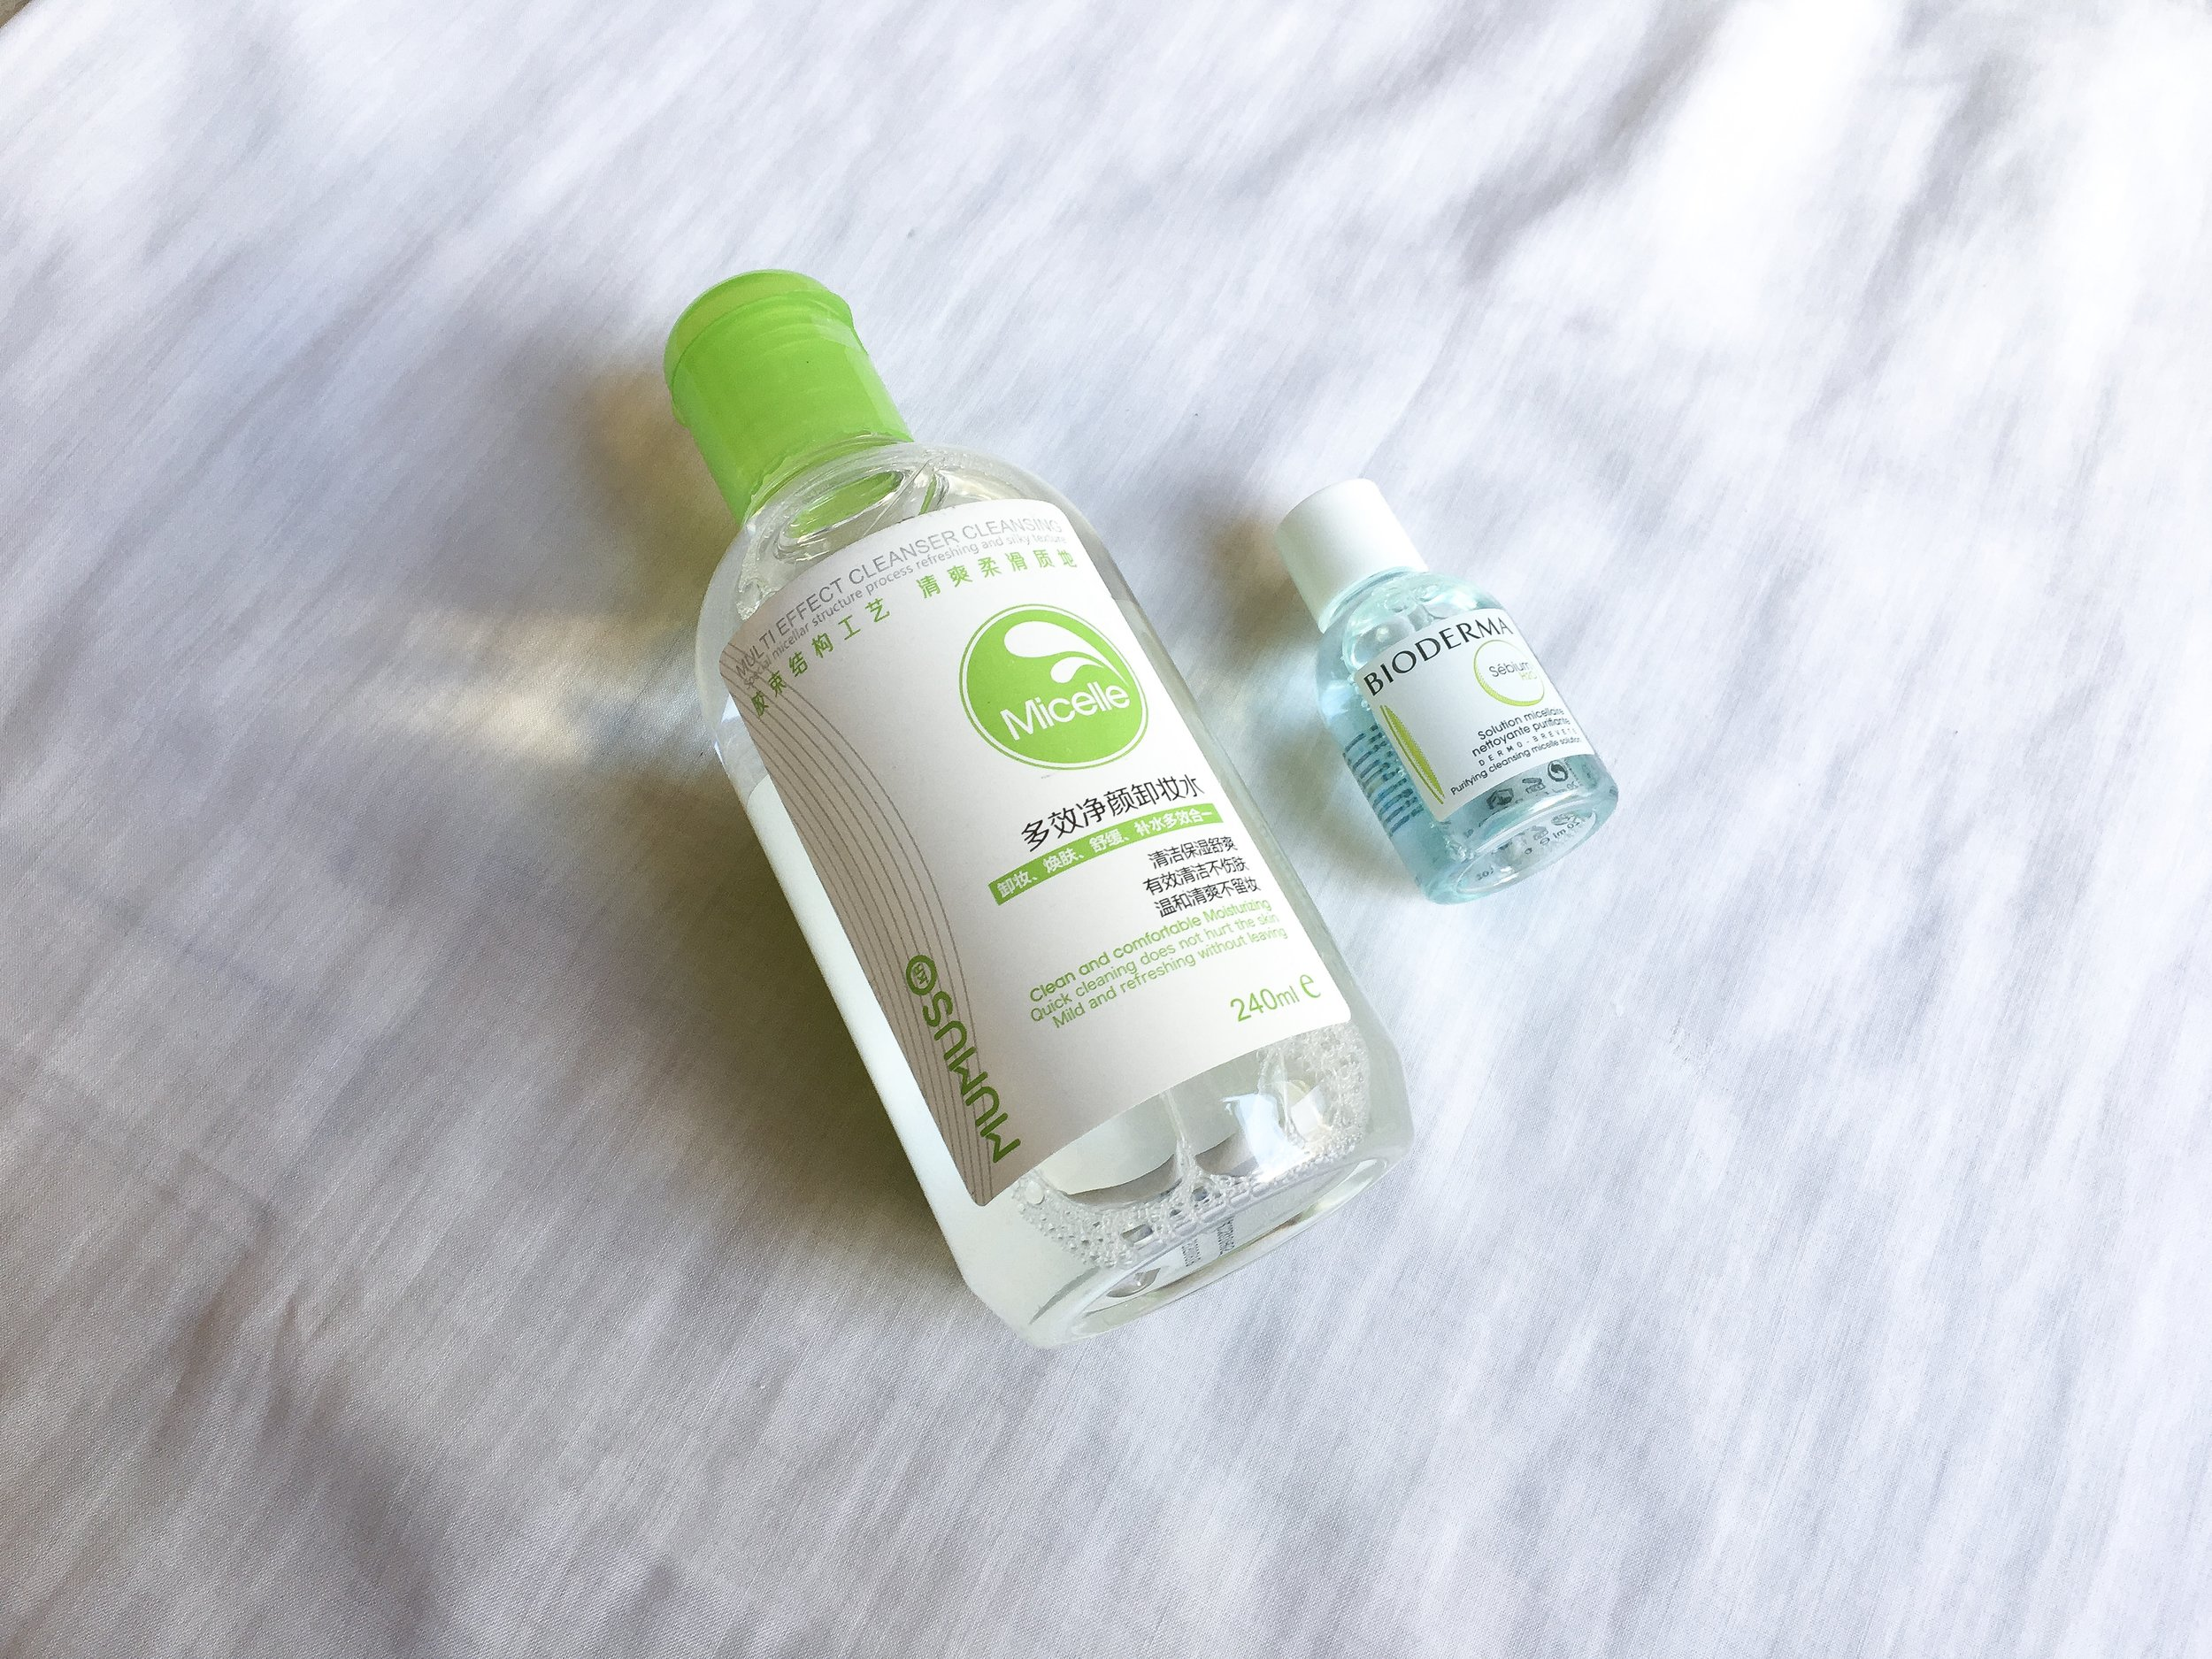 mumuso-vs-original-bioderma-micellar-water.jpg